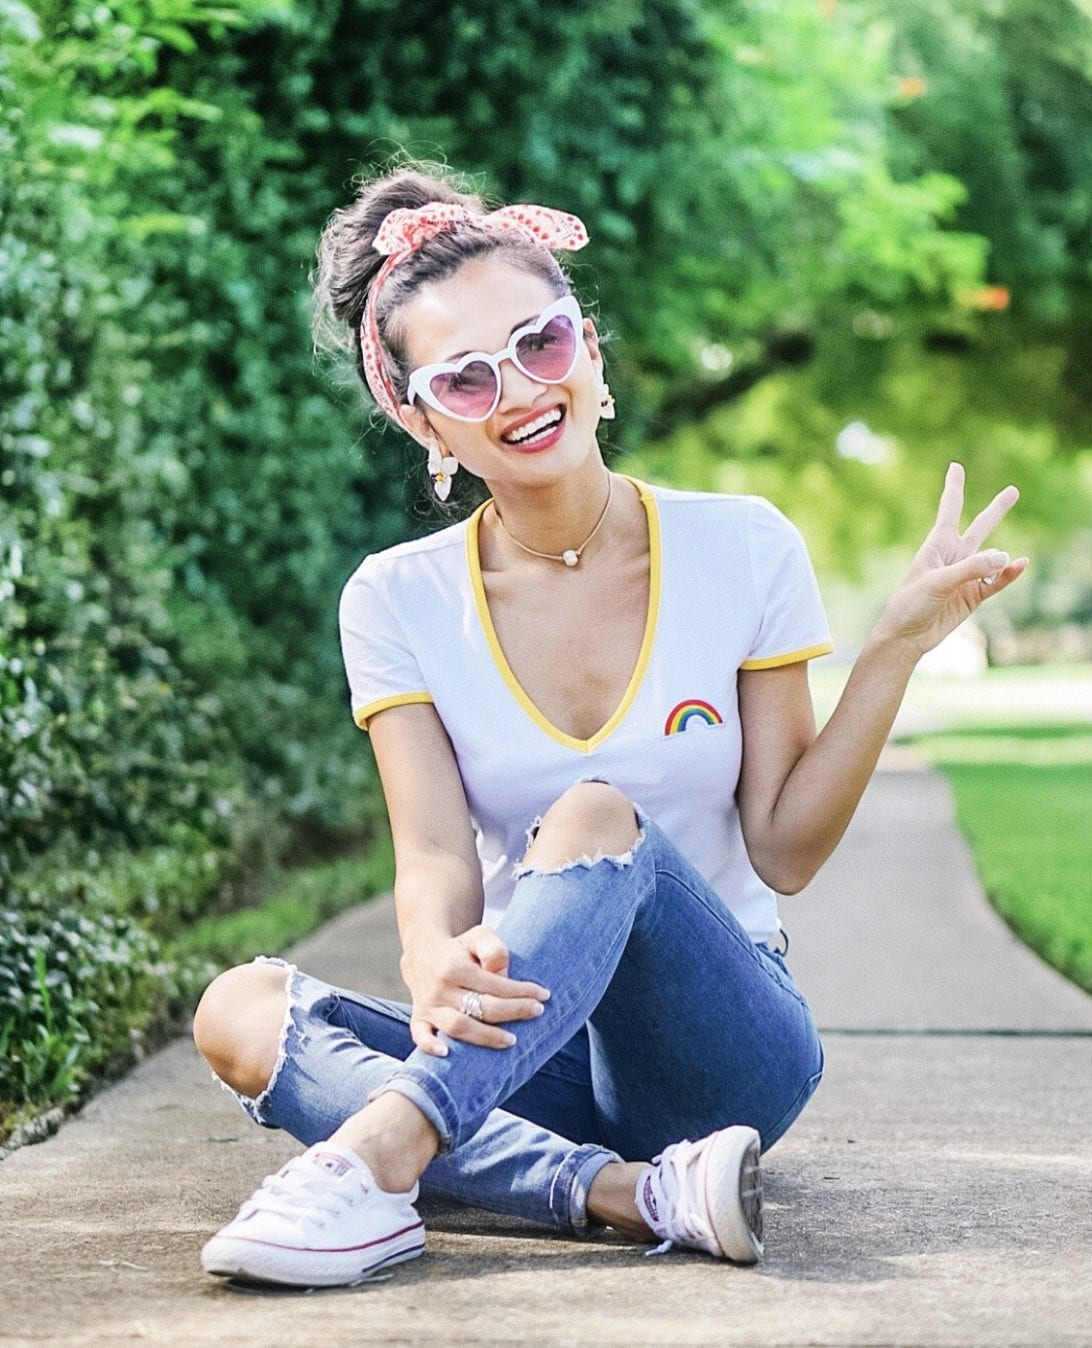 heart shaped sunglasses, rainbow shirt, #pride #happypride, converse, freepeople jeans, #freepeople, bandana, summer style, summer outfit, flower earrings, #dawnpdarnell